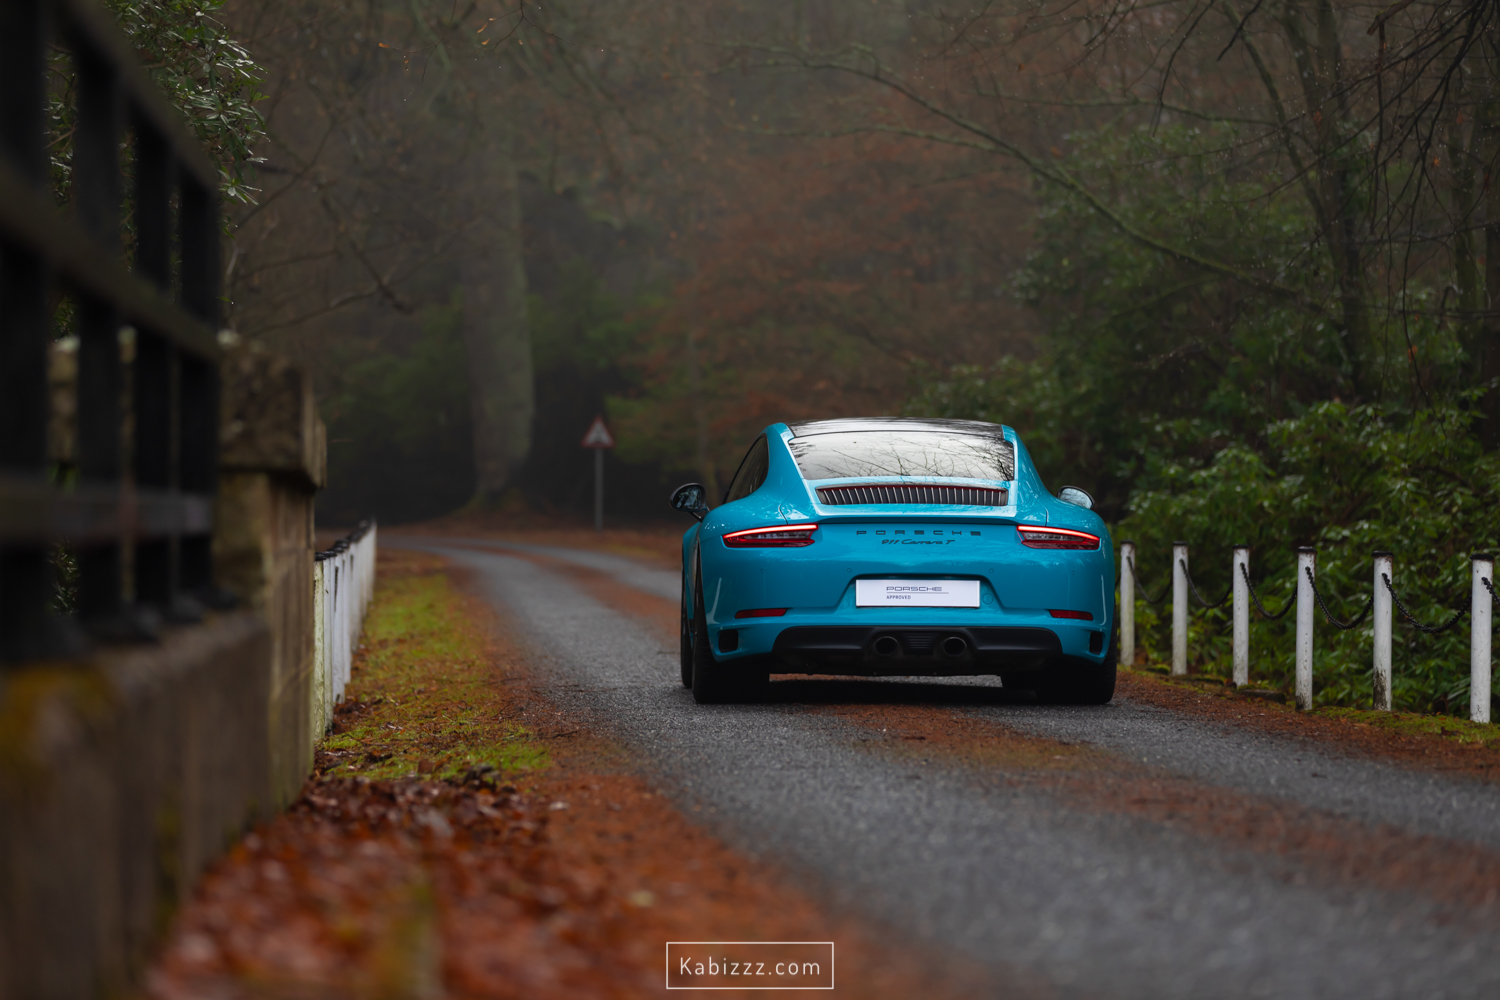 porsche_911_carrera_t_miamiblue_scotland_photography_automotive_photography_kabizzz-6.jpg